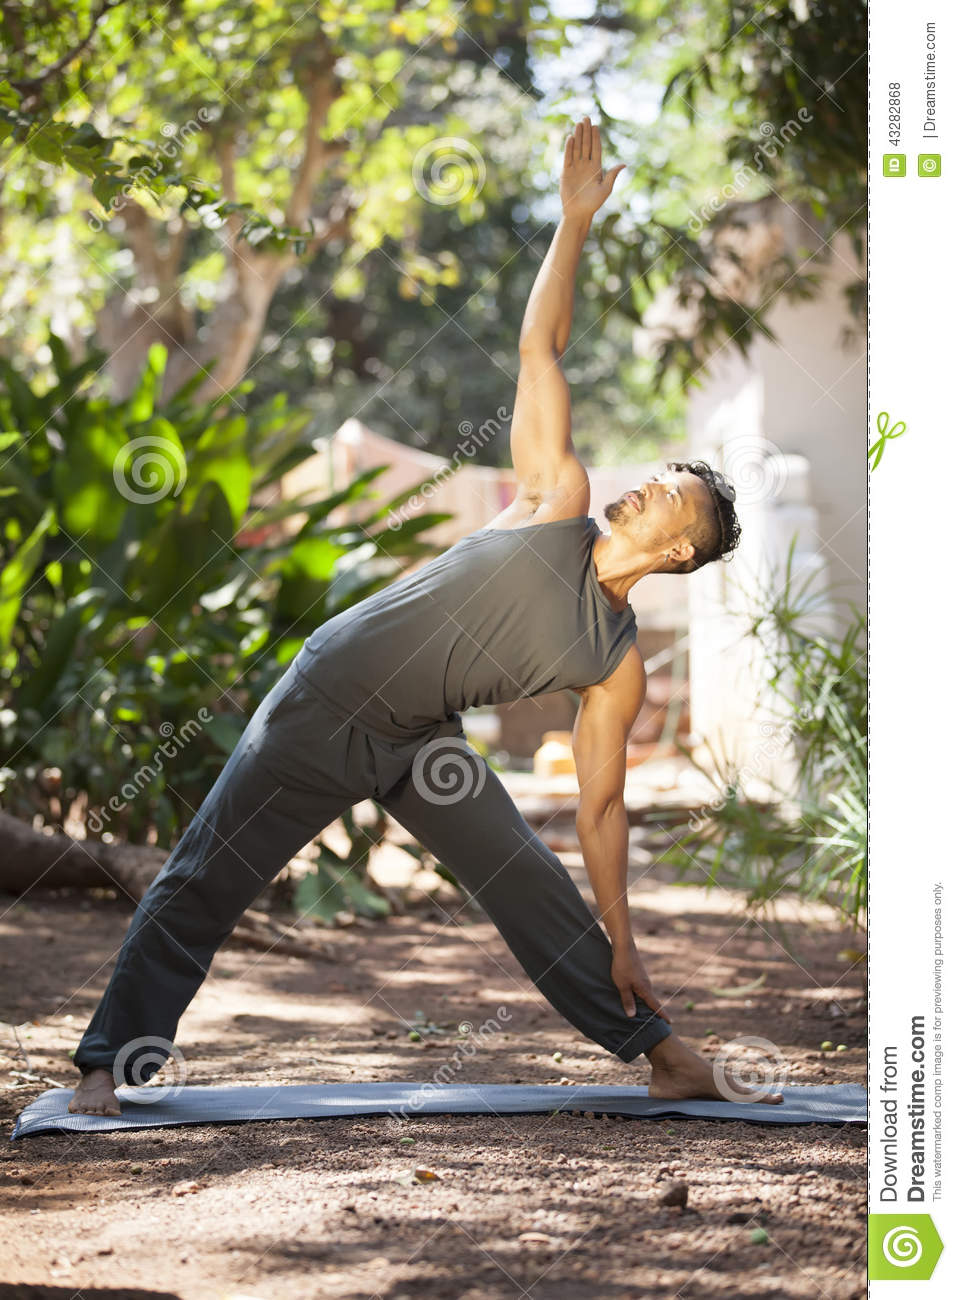 Yoga In Nature Stock Photo - Image: 43282868